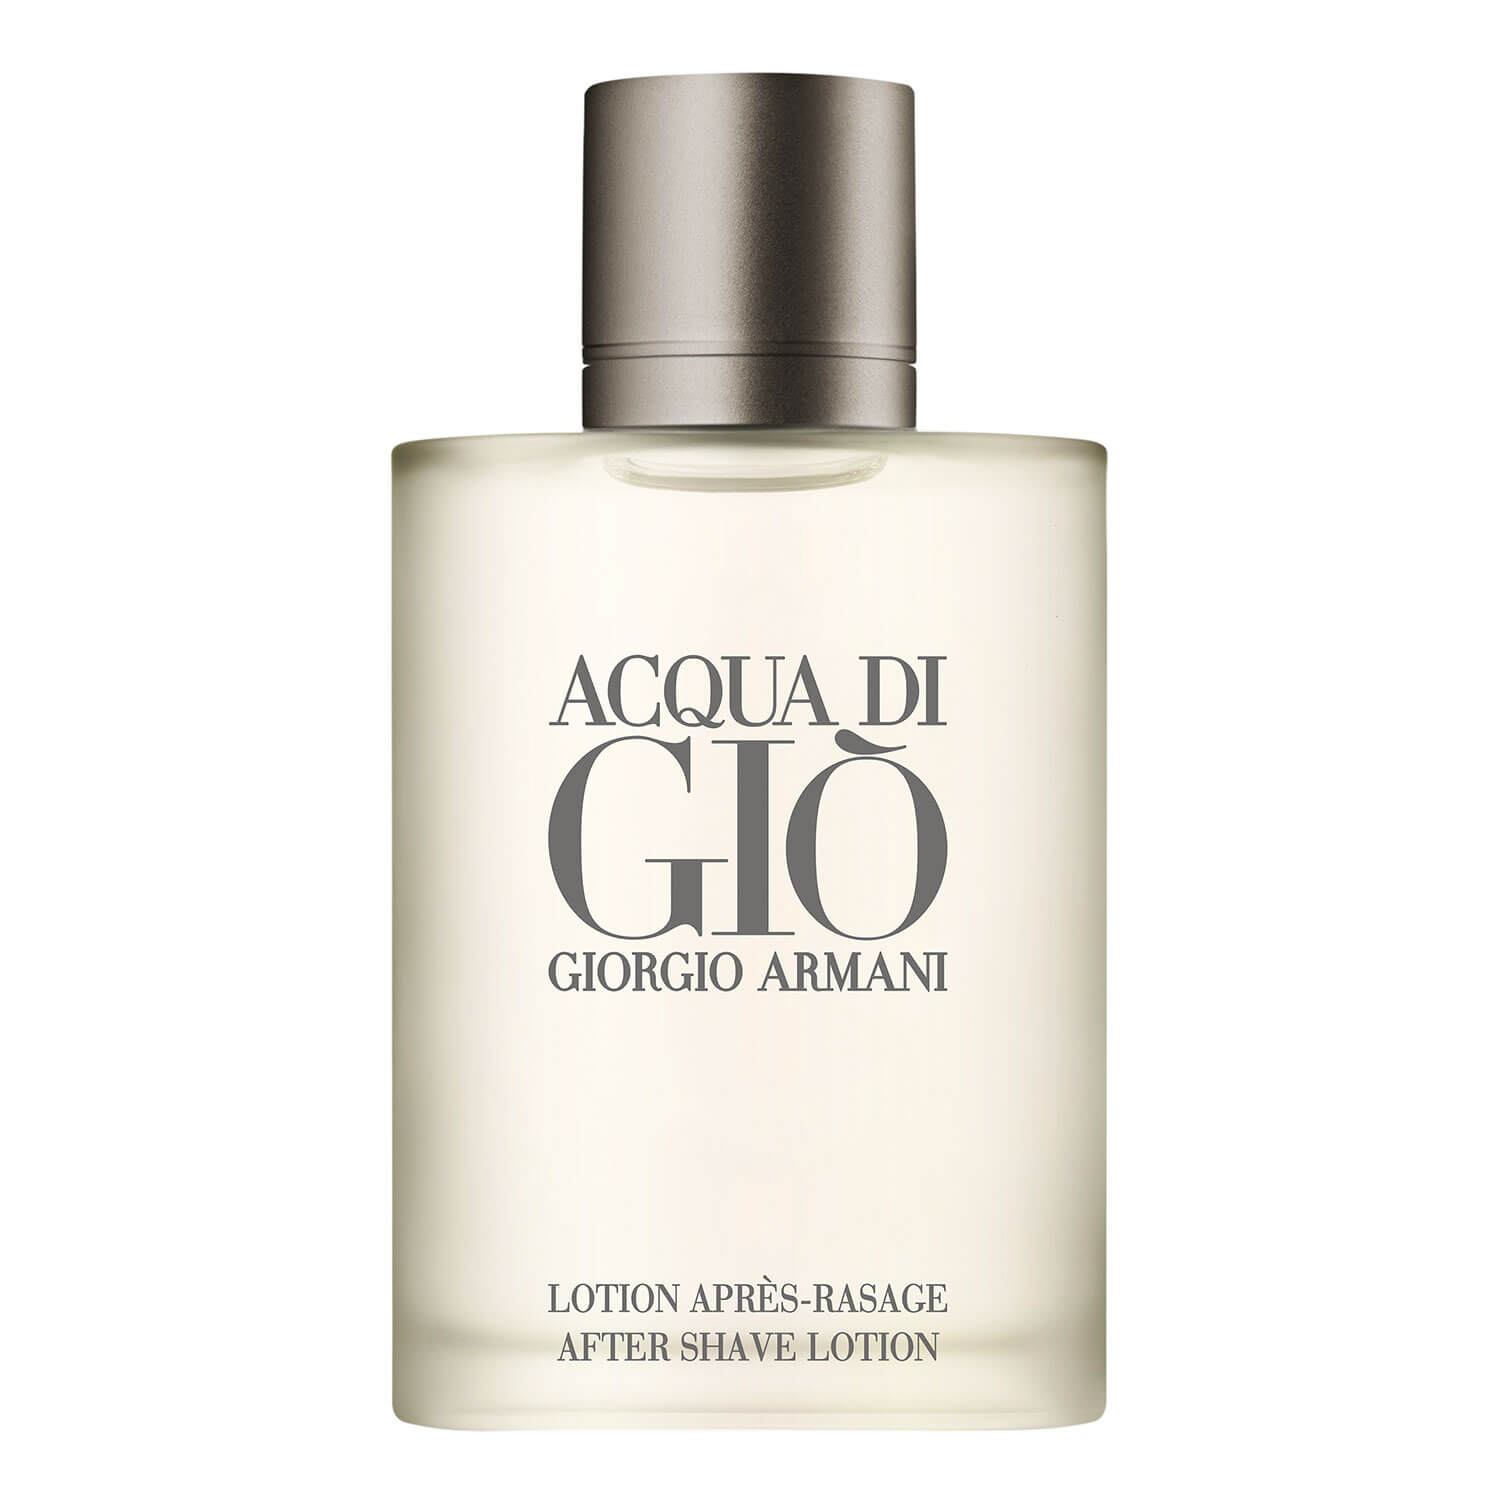 Acqua di Giò - After Shave